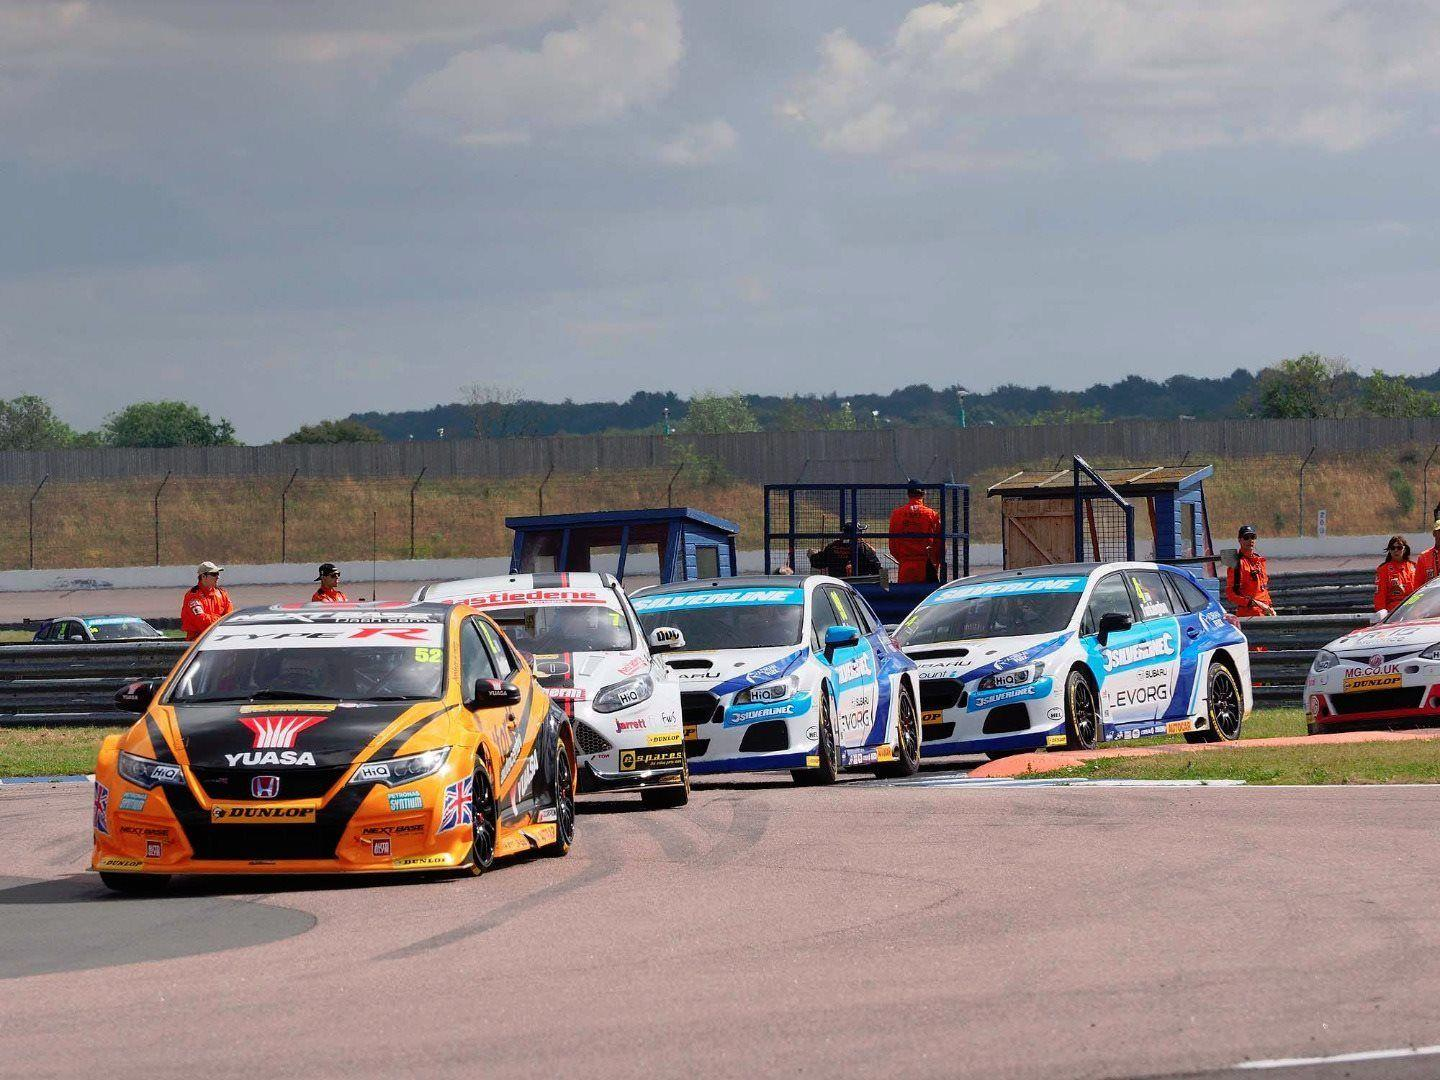 SUBARU STORM THROUGH THE FIELD AT ROCKINGHAM